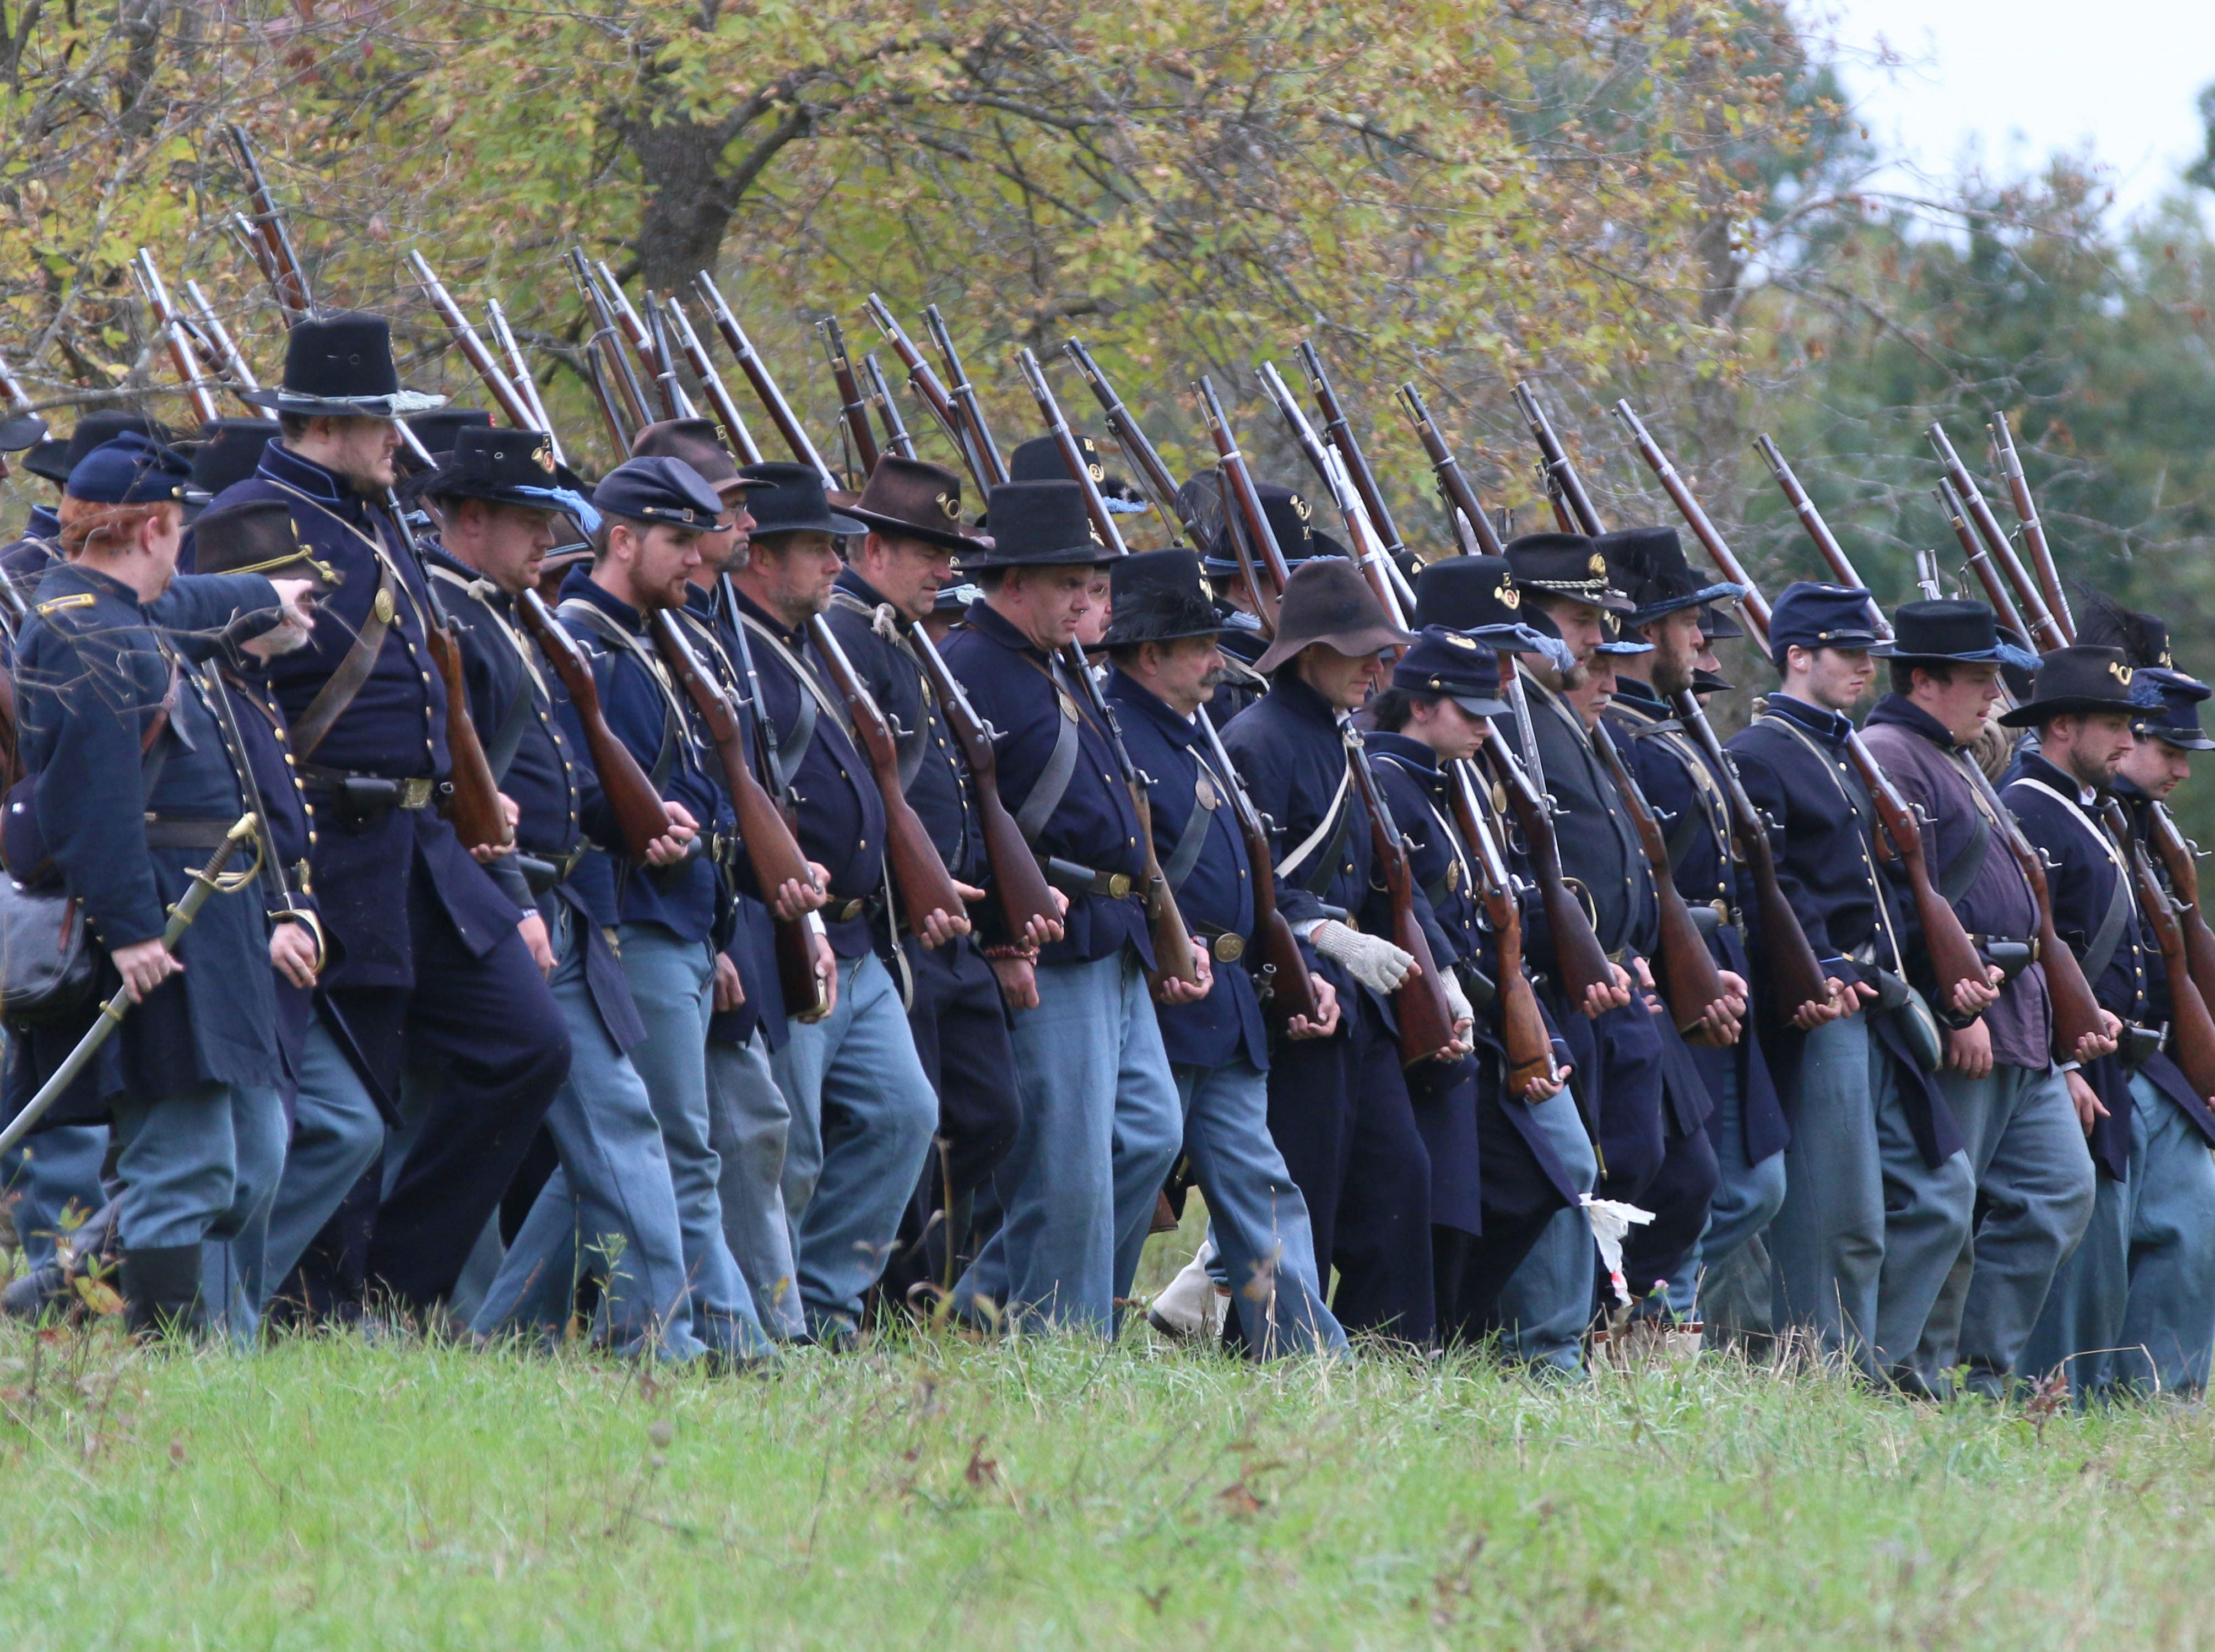 Union Soldiers march during the Civil War Weekend at the Wade House, Saturday September 29, 2018, in Greenbush, Wis.